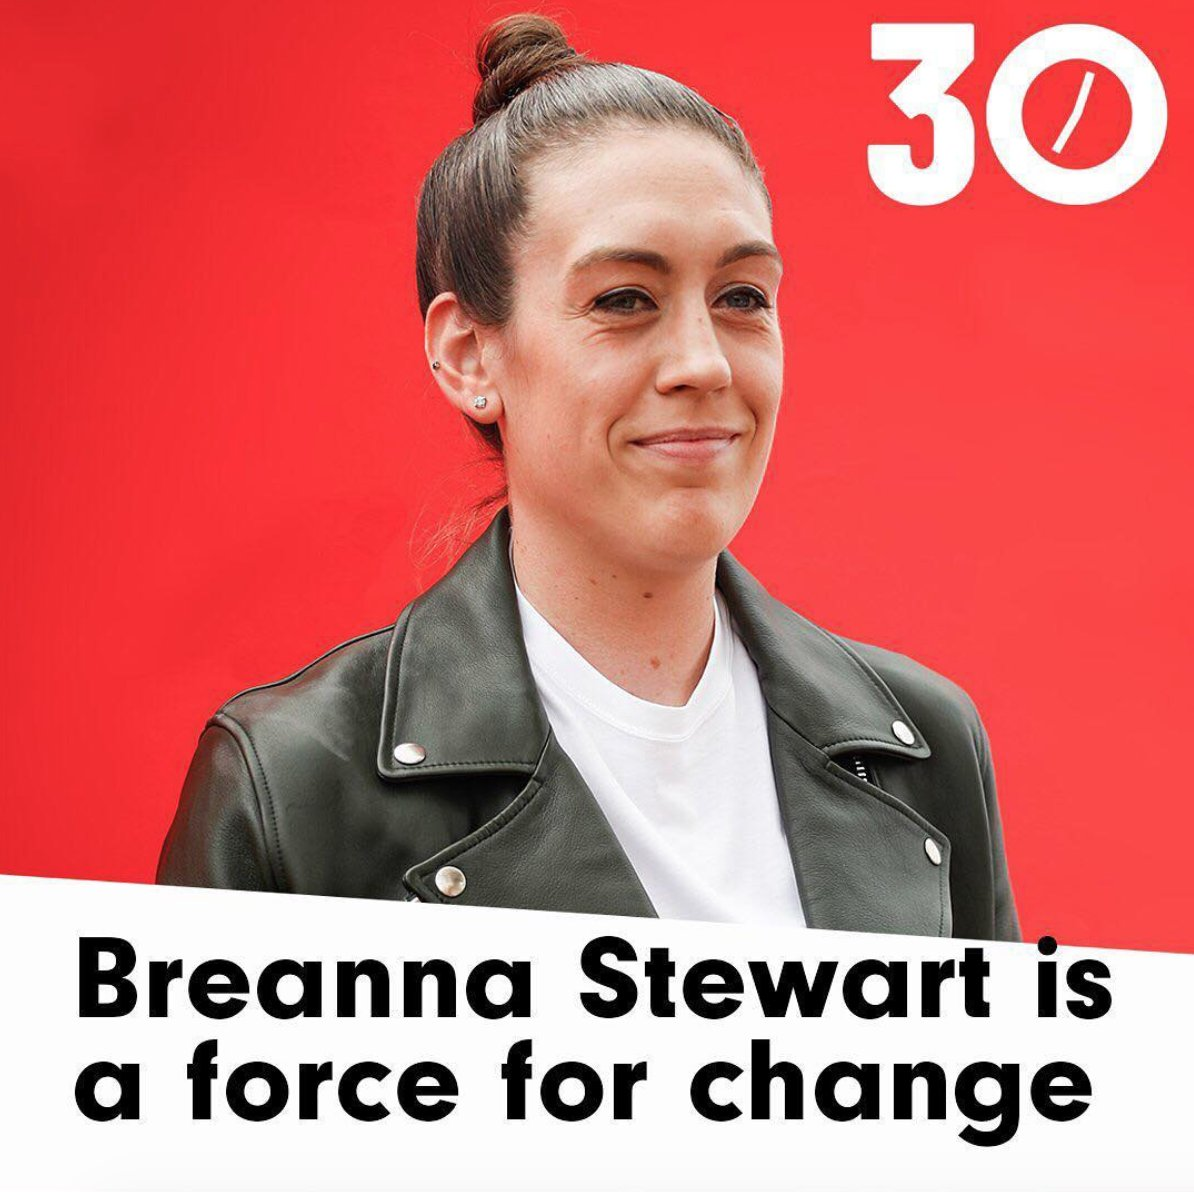 .@breannastewart is one of ONE37pm&#39;s 30 Most Entrepreneurial Athletes   the @WNBA star is also investor, entrepreneur and advocate who&#39;s partnered with @RAINN to create a signature t-shirt and raise money for survivors of sexual violence. #30MEA<br>http://pic.twitter.com/KSsd5Mm8yT